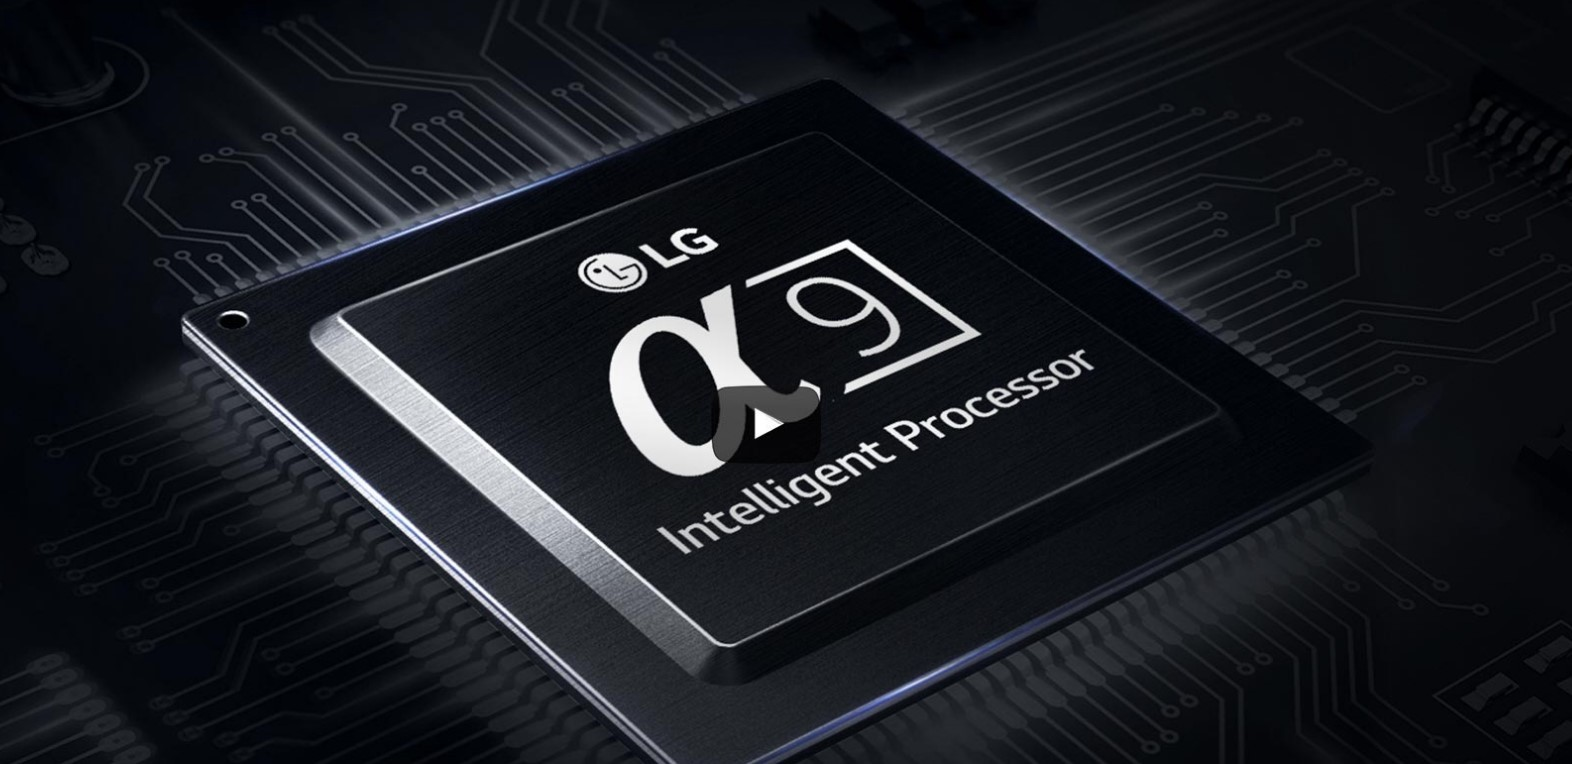 A video clip to introduce the technological advances of LG's new Alpha 9 Intelligent Processor